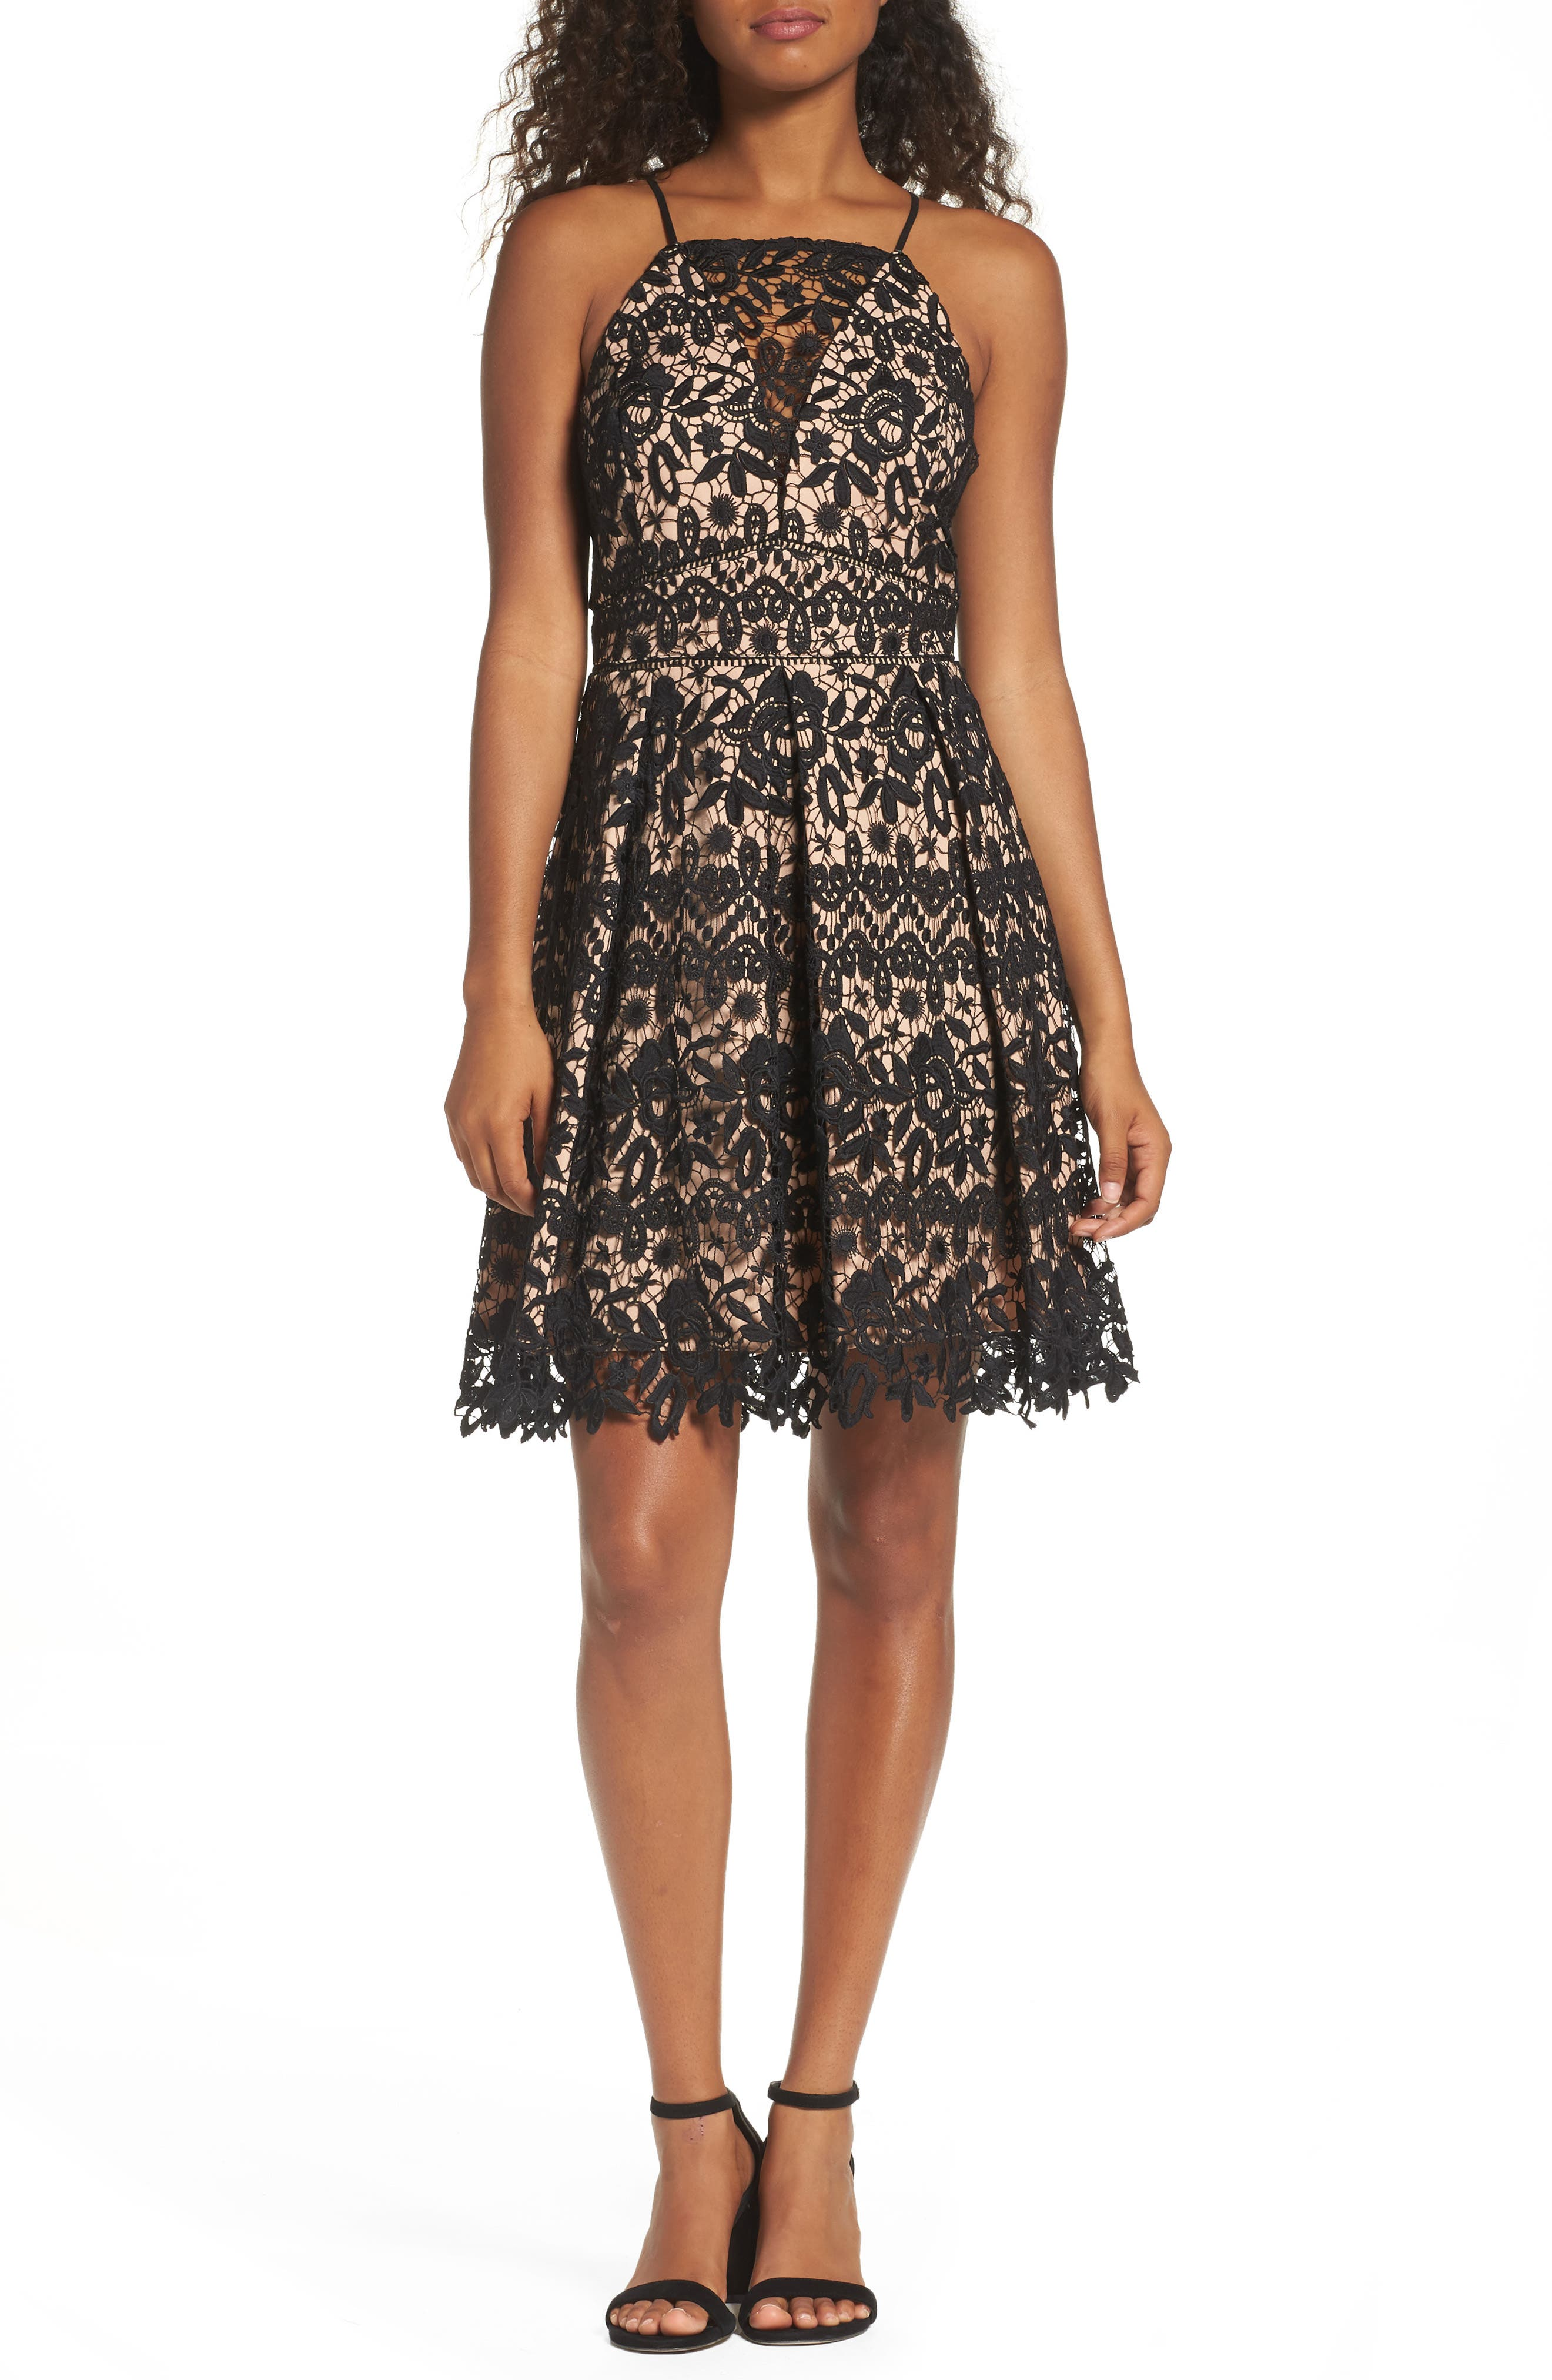 Alternate Image 1 Selected - Adelyn Rae Krista Lace Fit & Flare Dress